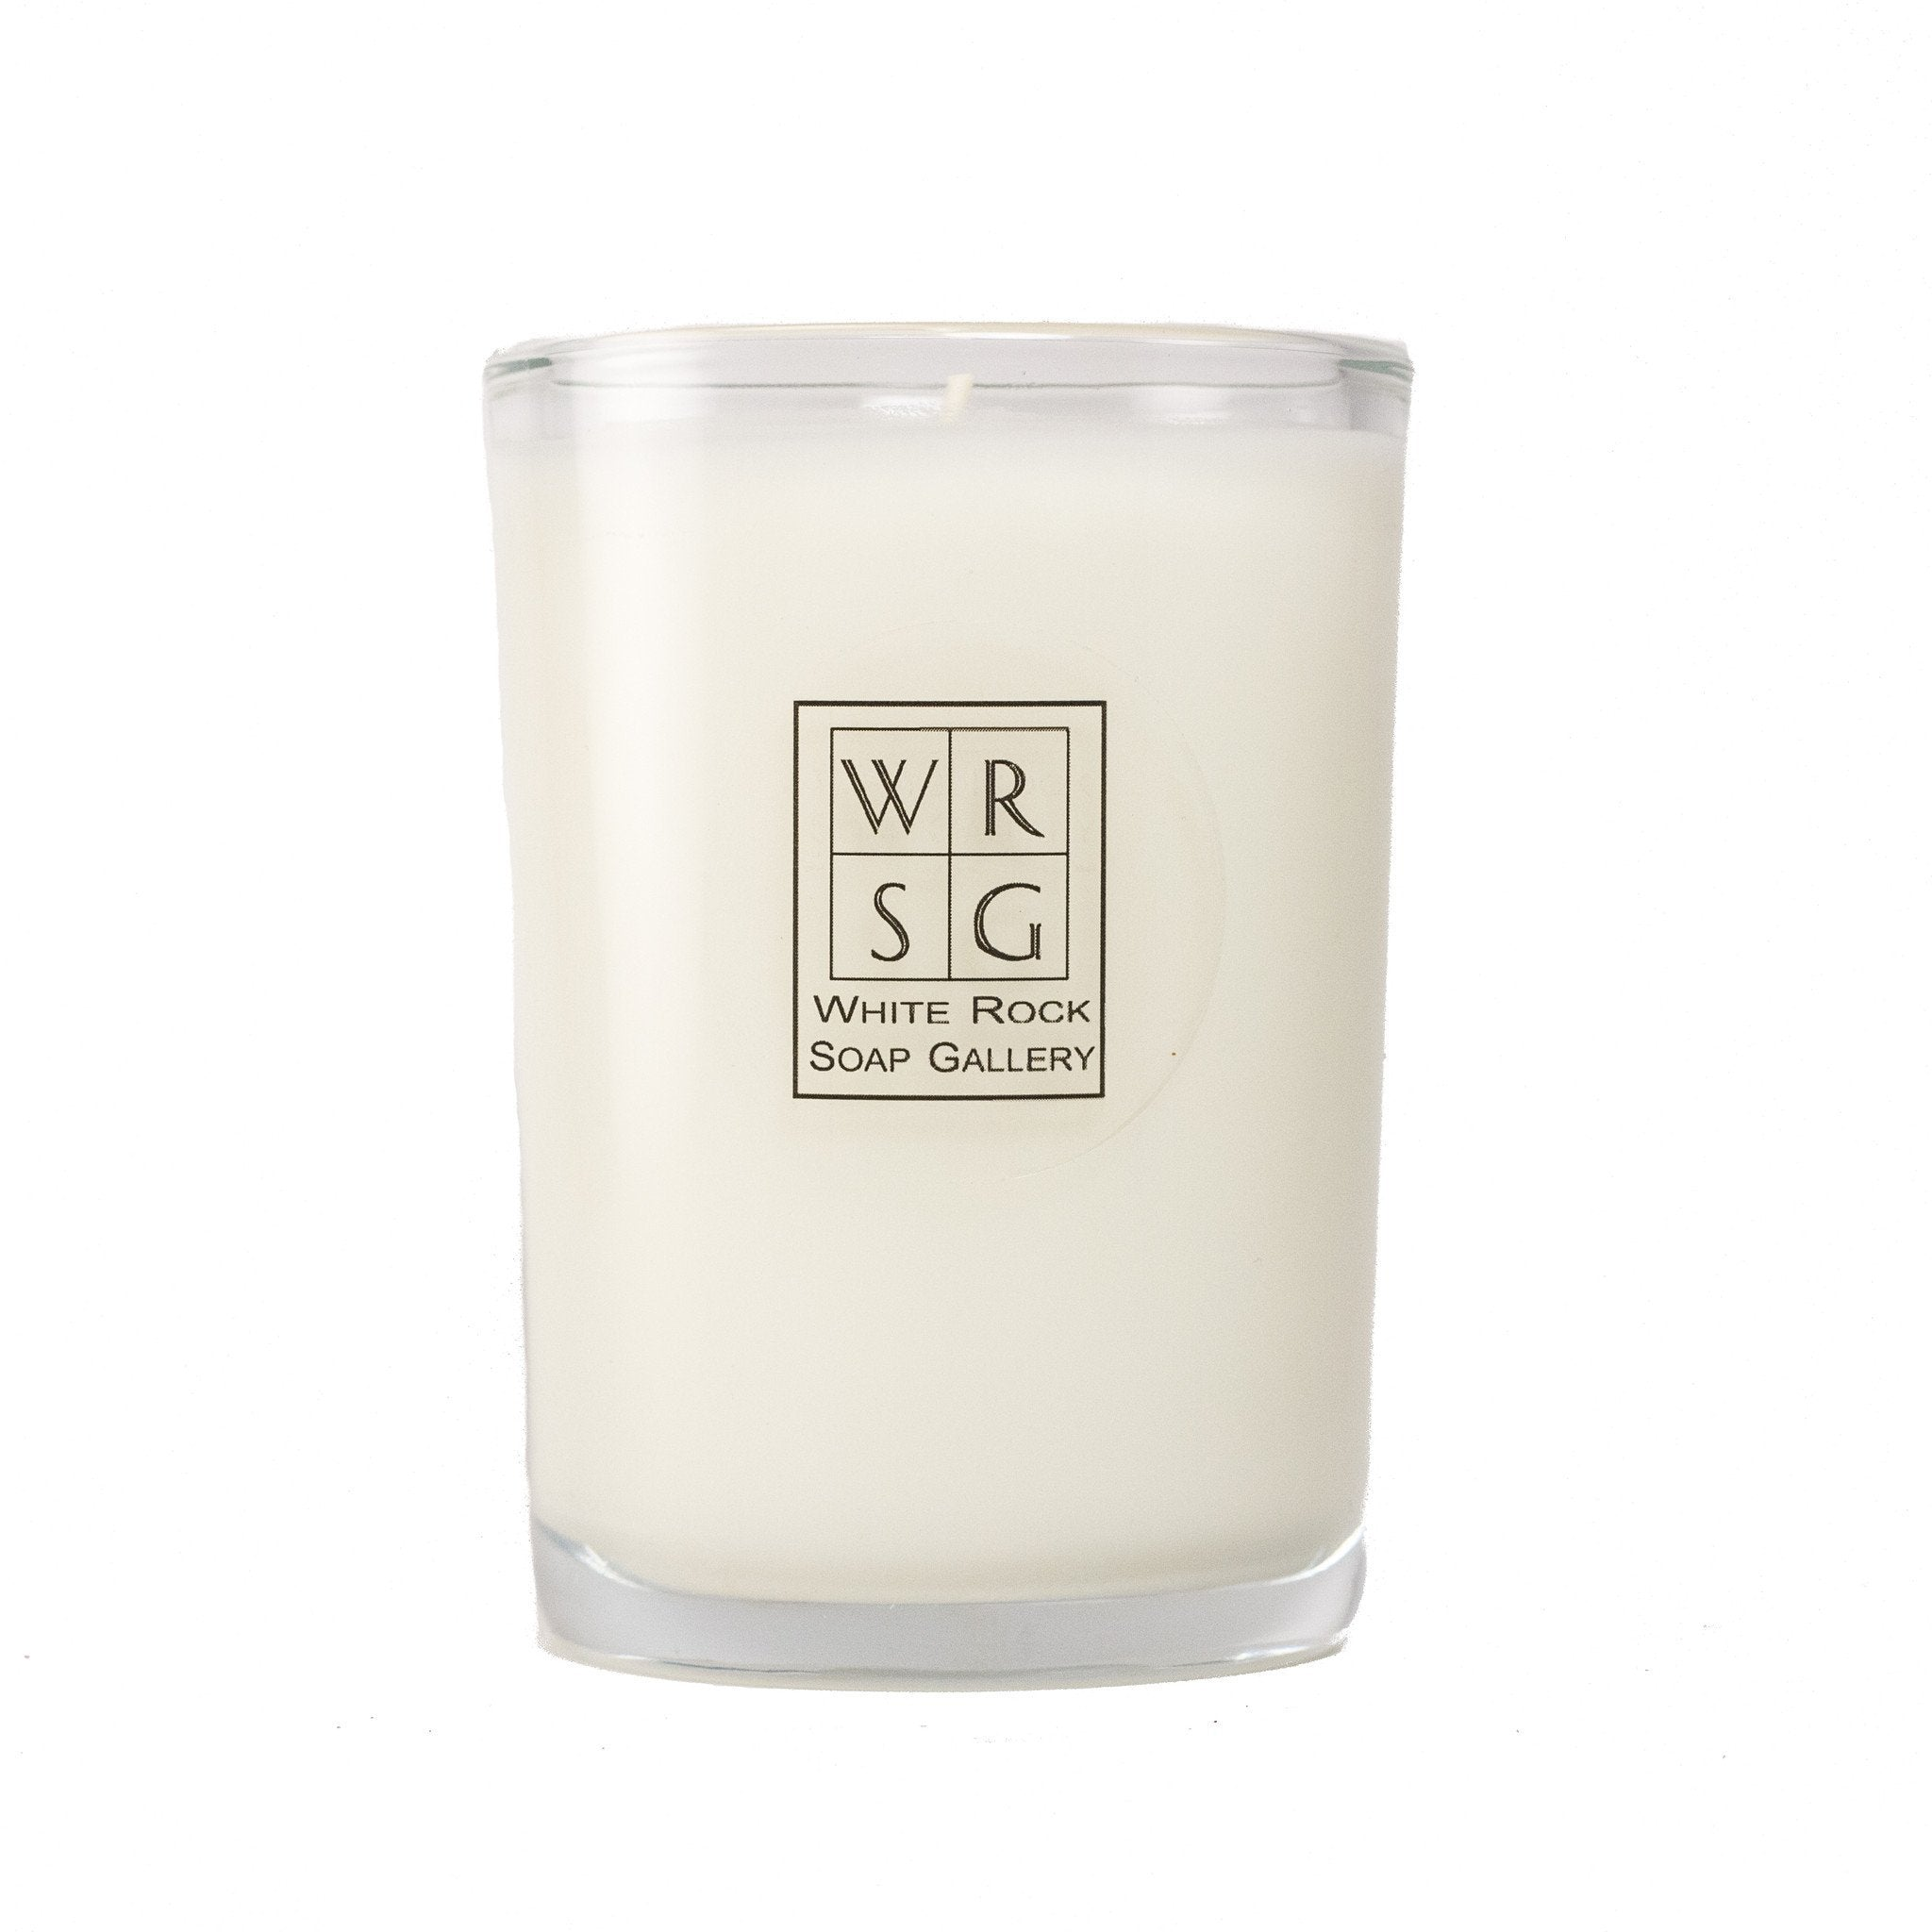 8 oz Glass Soy Wax Candle - White Rock Soap Gallery